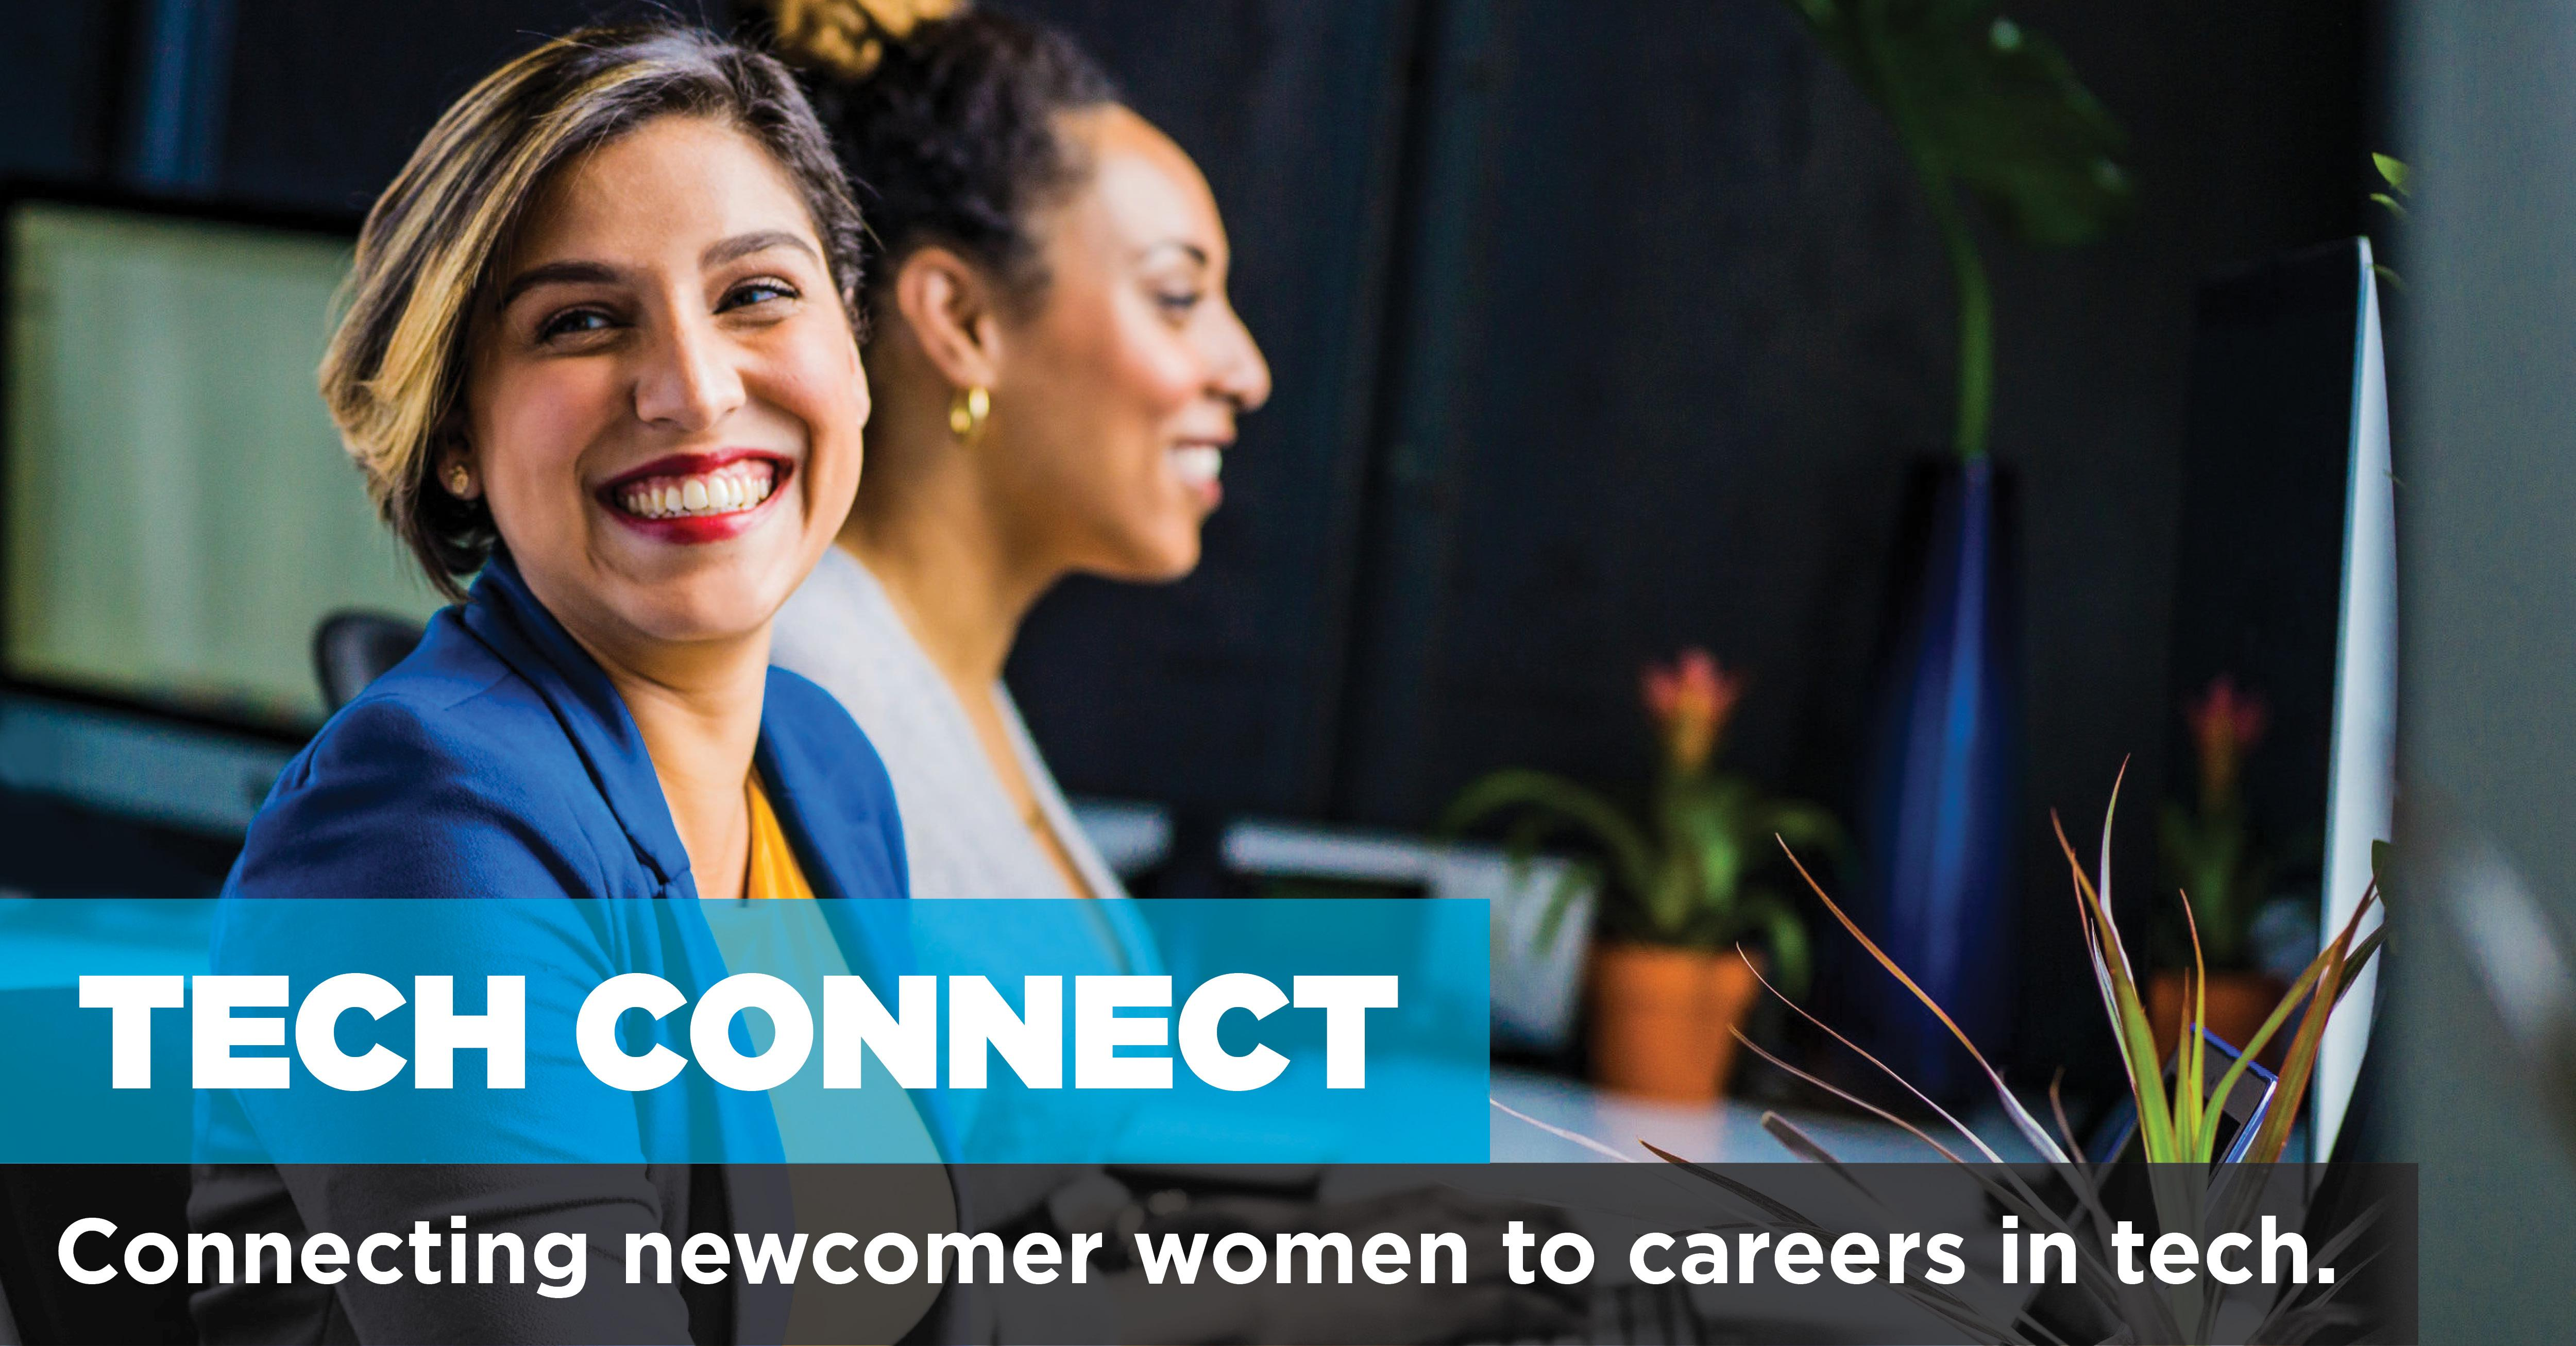 YWCA Tech Connect Info Session | FREE Program for Newcomer Women in Tech